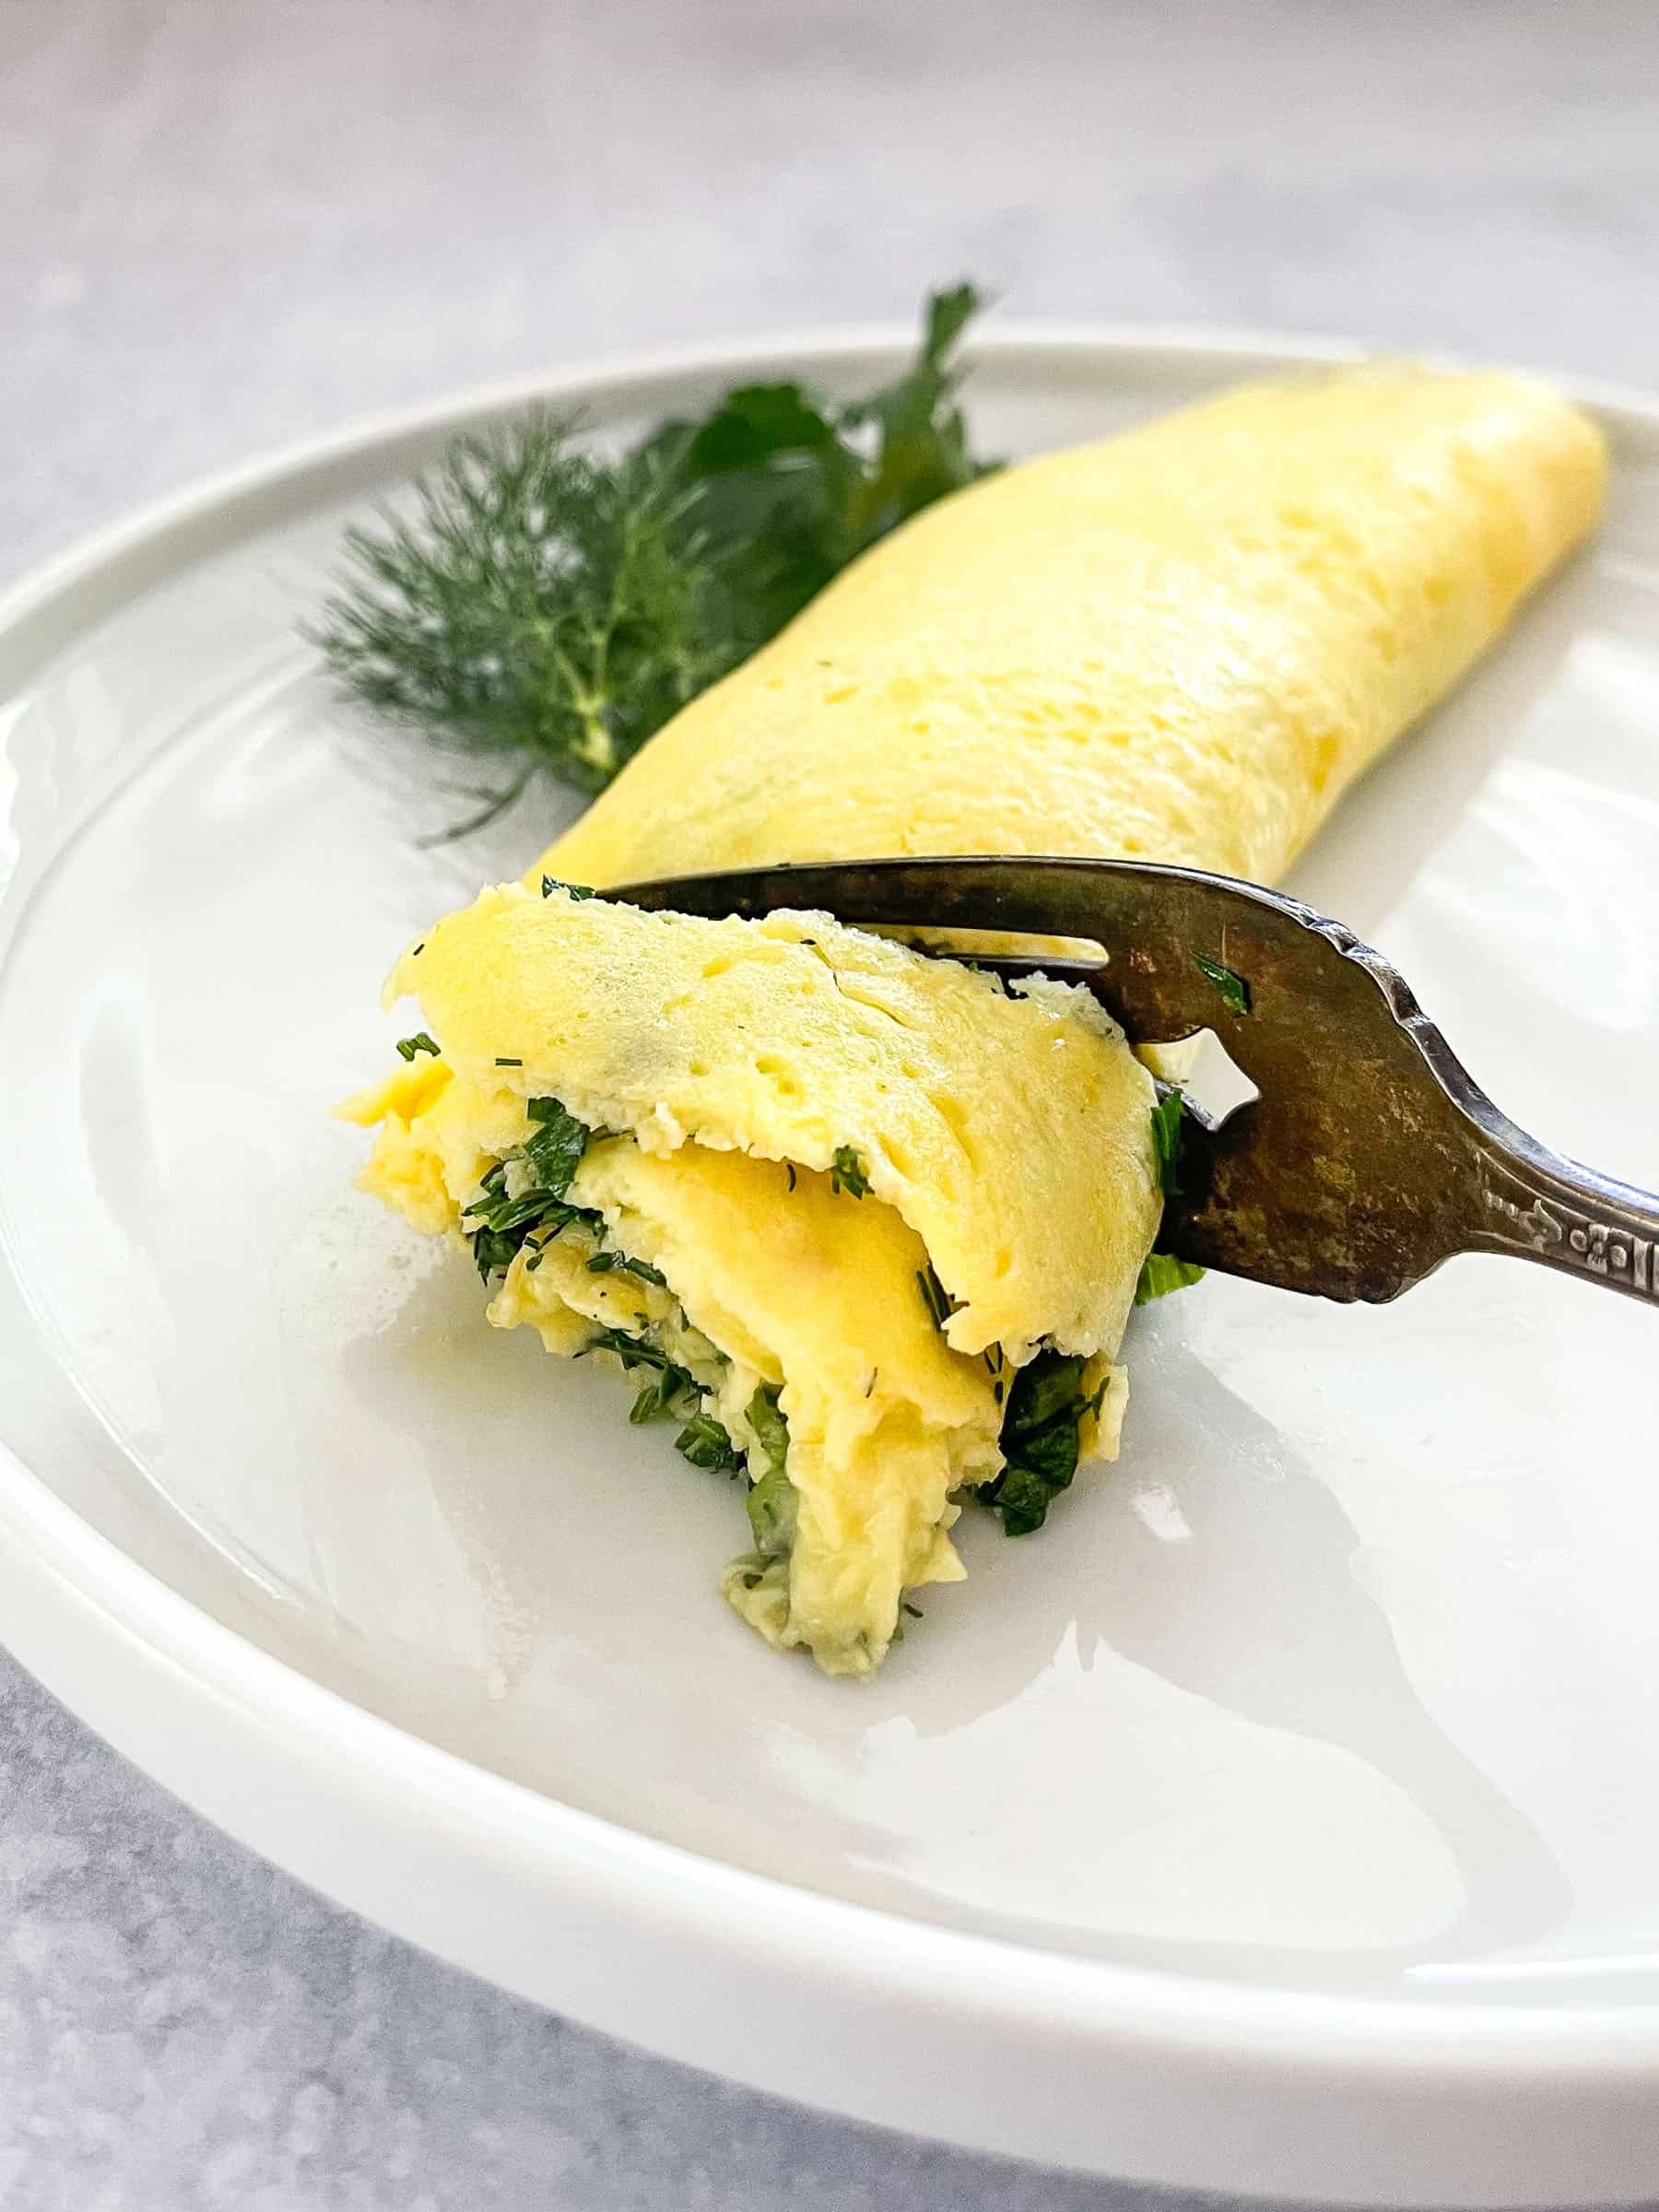 french omelet on white plate garnished with dill and parsley with antique fork cutting omelet